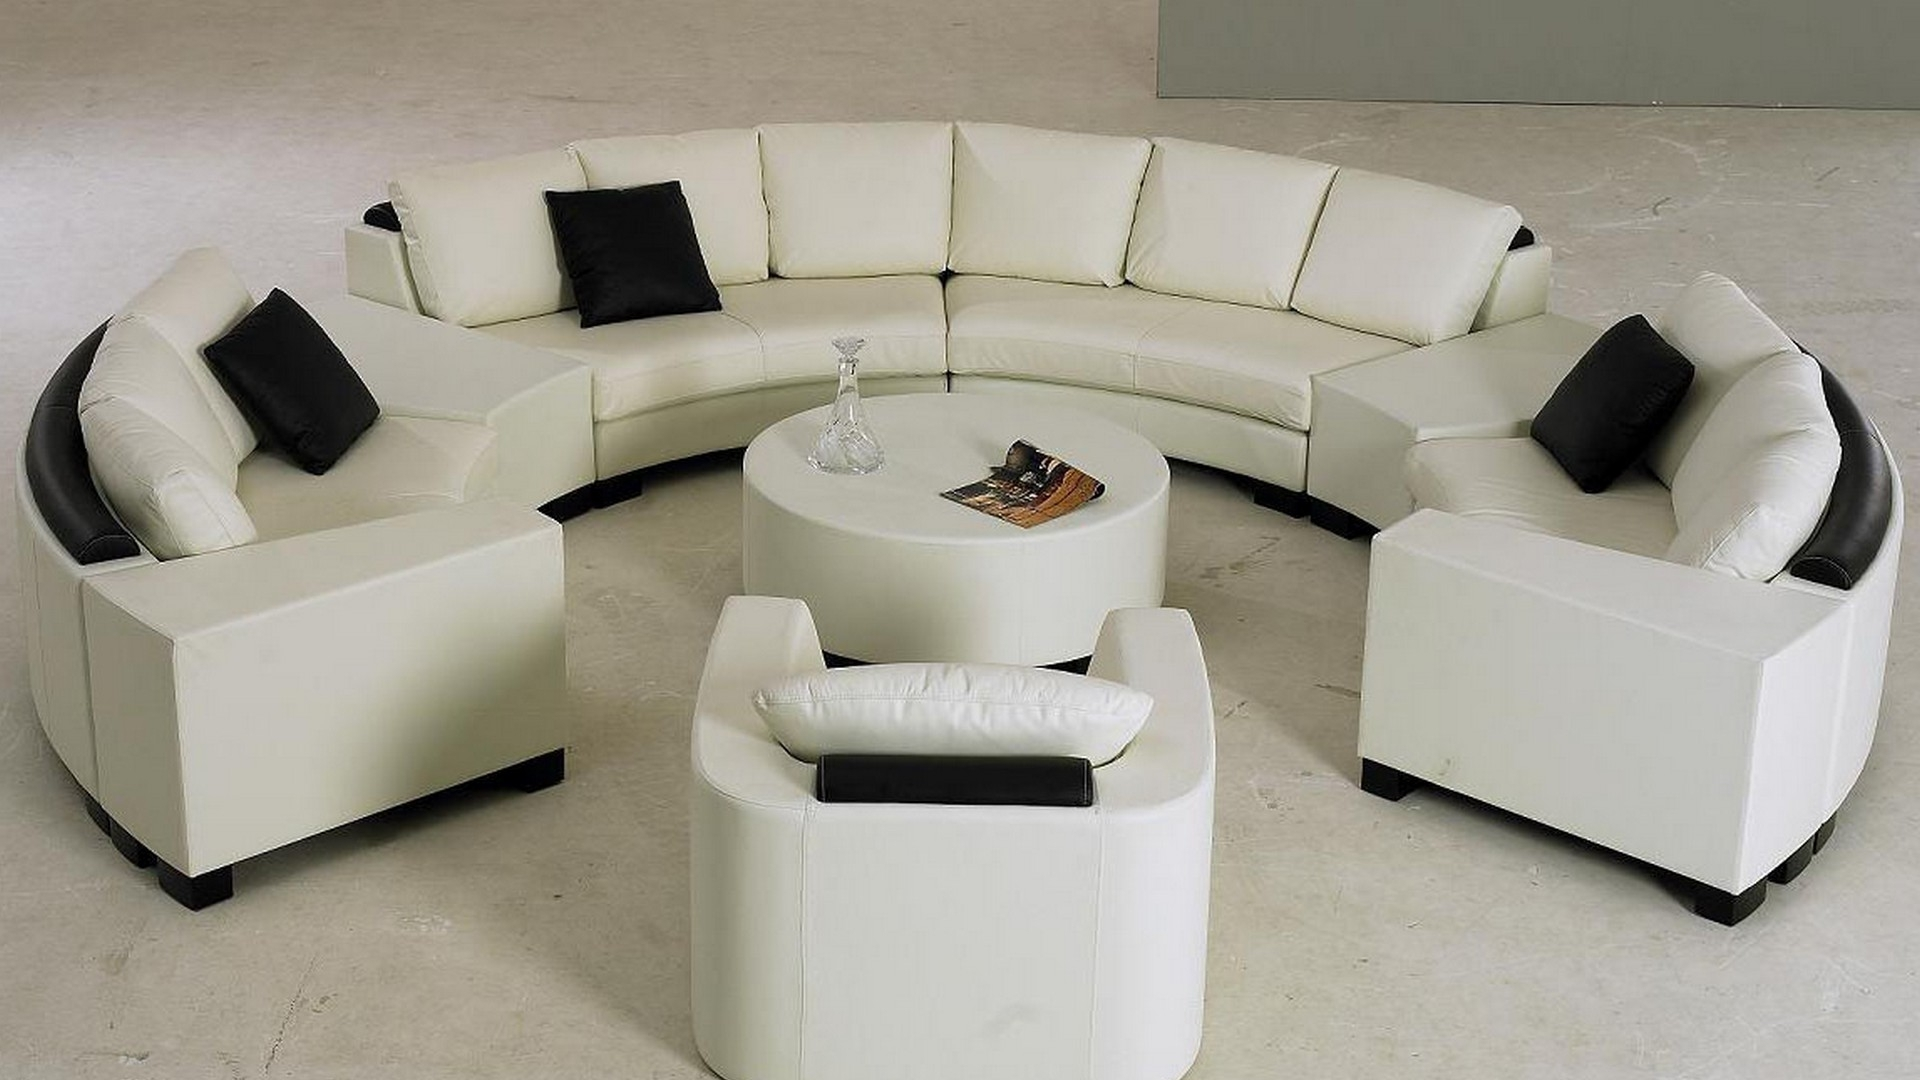 Engagng White Half Round Sofa With Black Pillows And Rond Table With Widely Used Round Sofas (View 9 of 15)